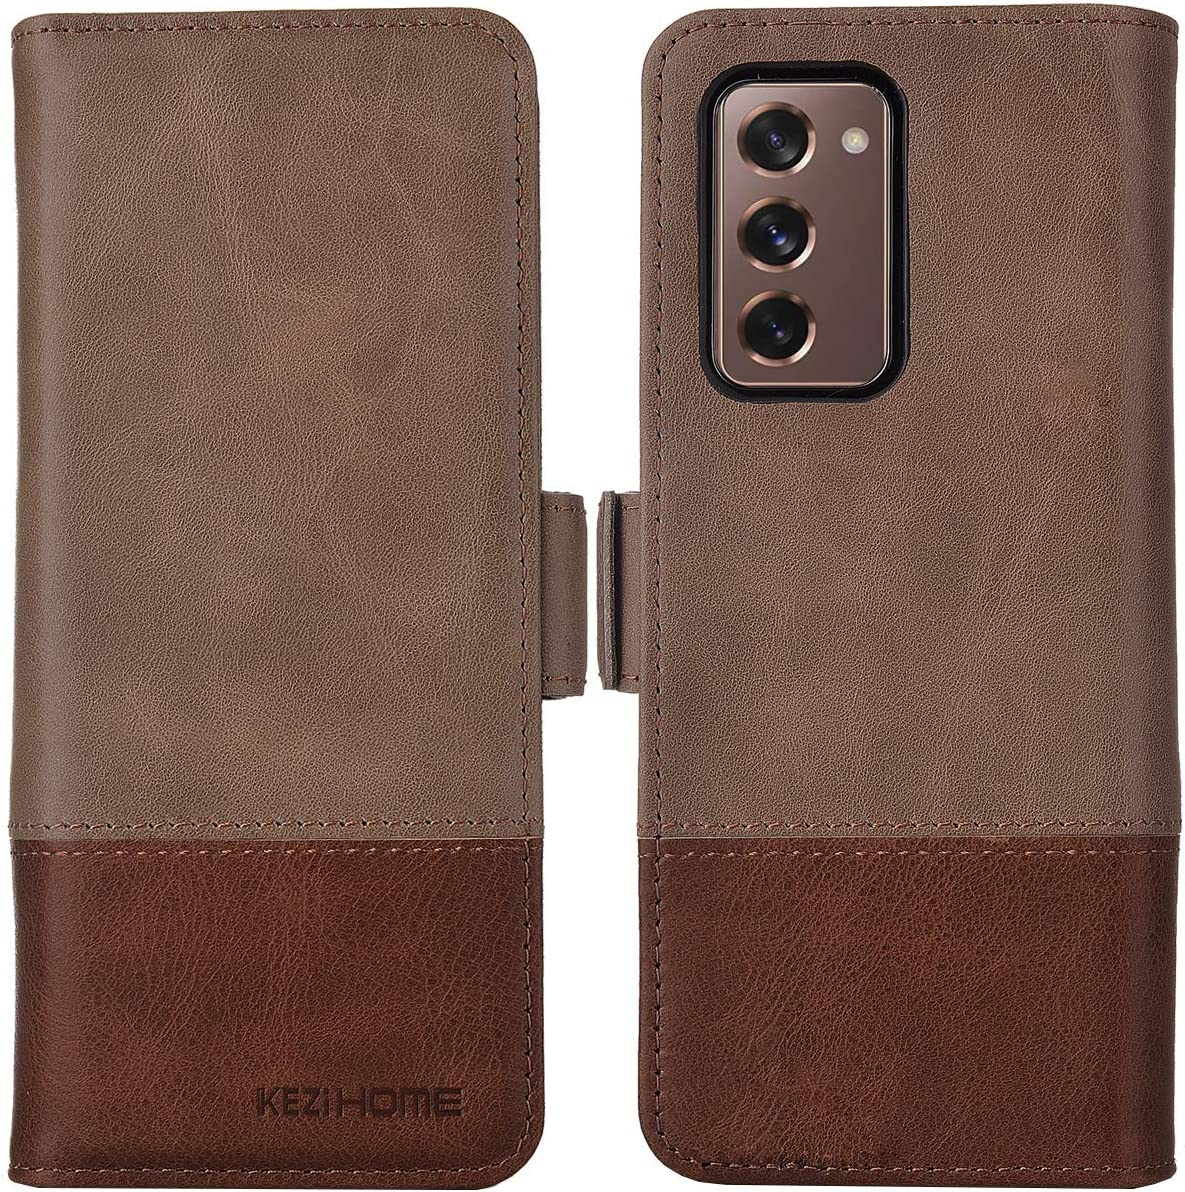 KEZiHOME Samsung Galaxy Z Fold 2 5G Case, Genuine Leather Galaxy Z Fold 2 Wallet Case [RFID Blocking] with Card Slot Flip Magnetic Case Compatible with Samsung Galaxy Z Fold 2 5G (Gray/Brown)